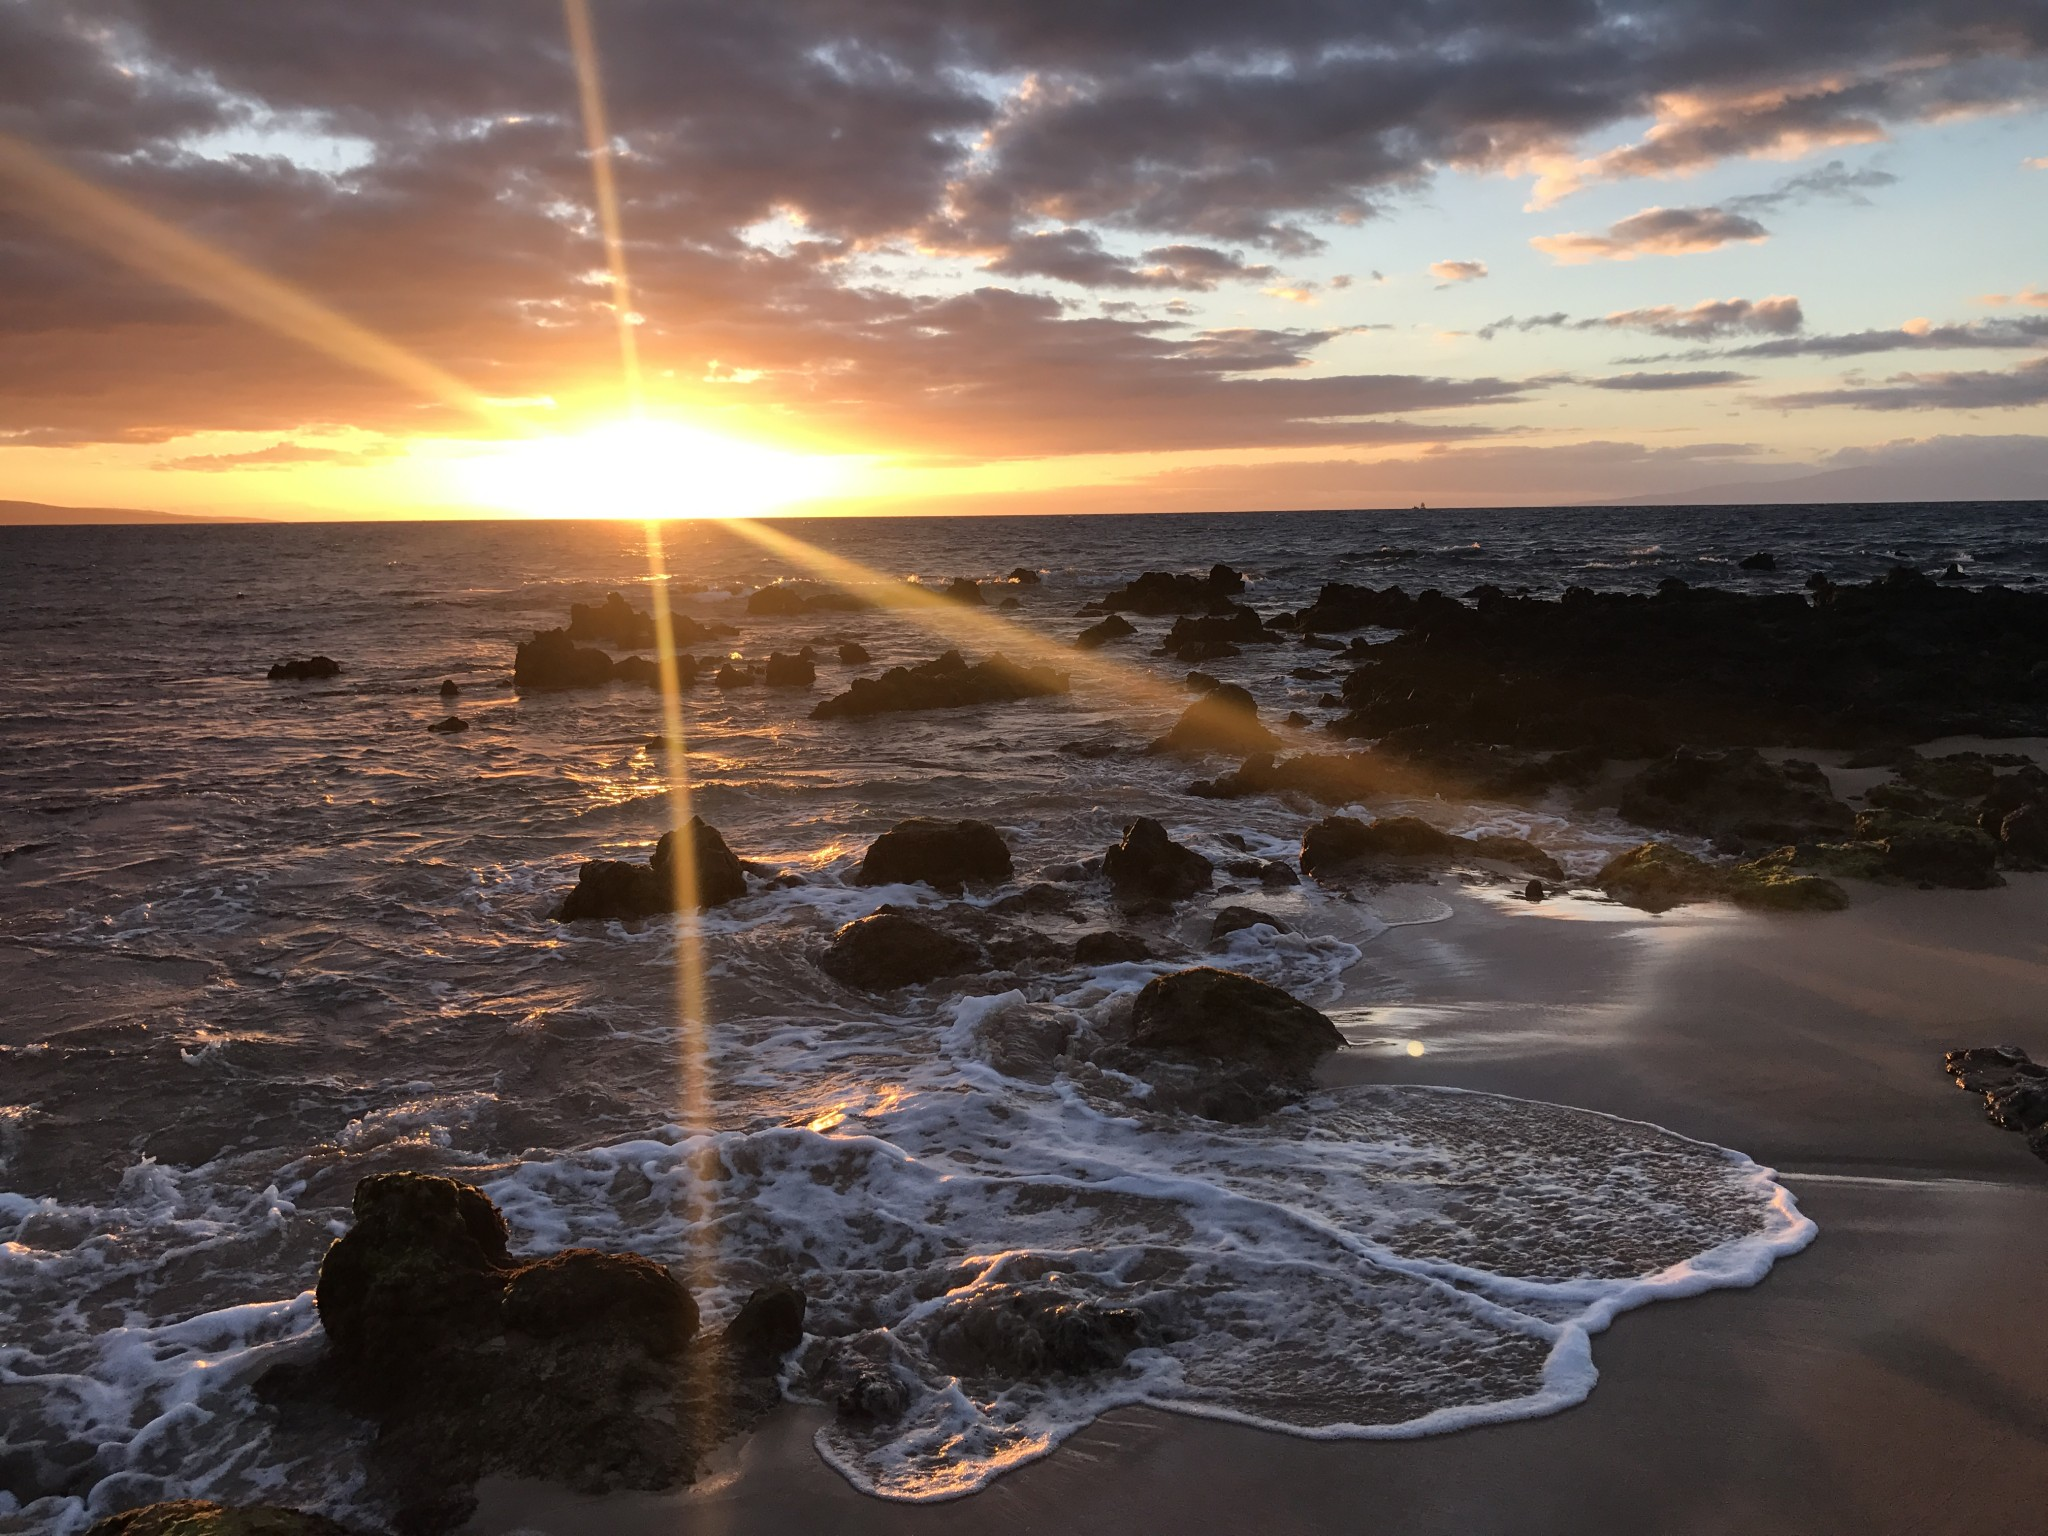 keawakapu beach sunset, maui, the-alyst.com